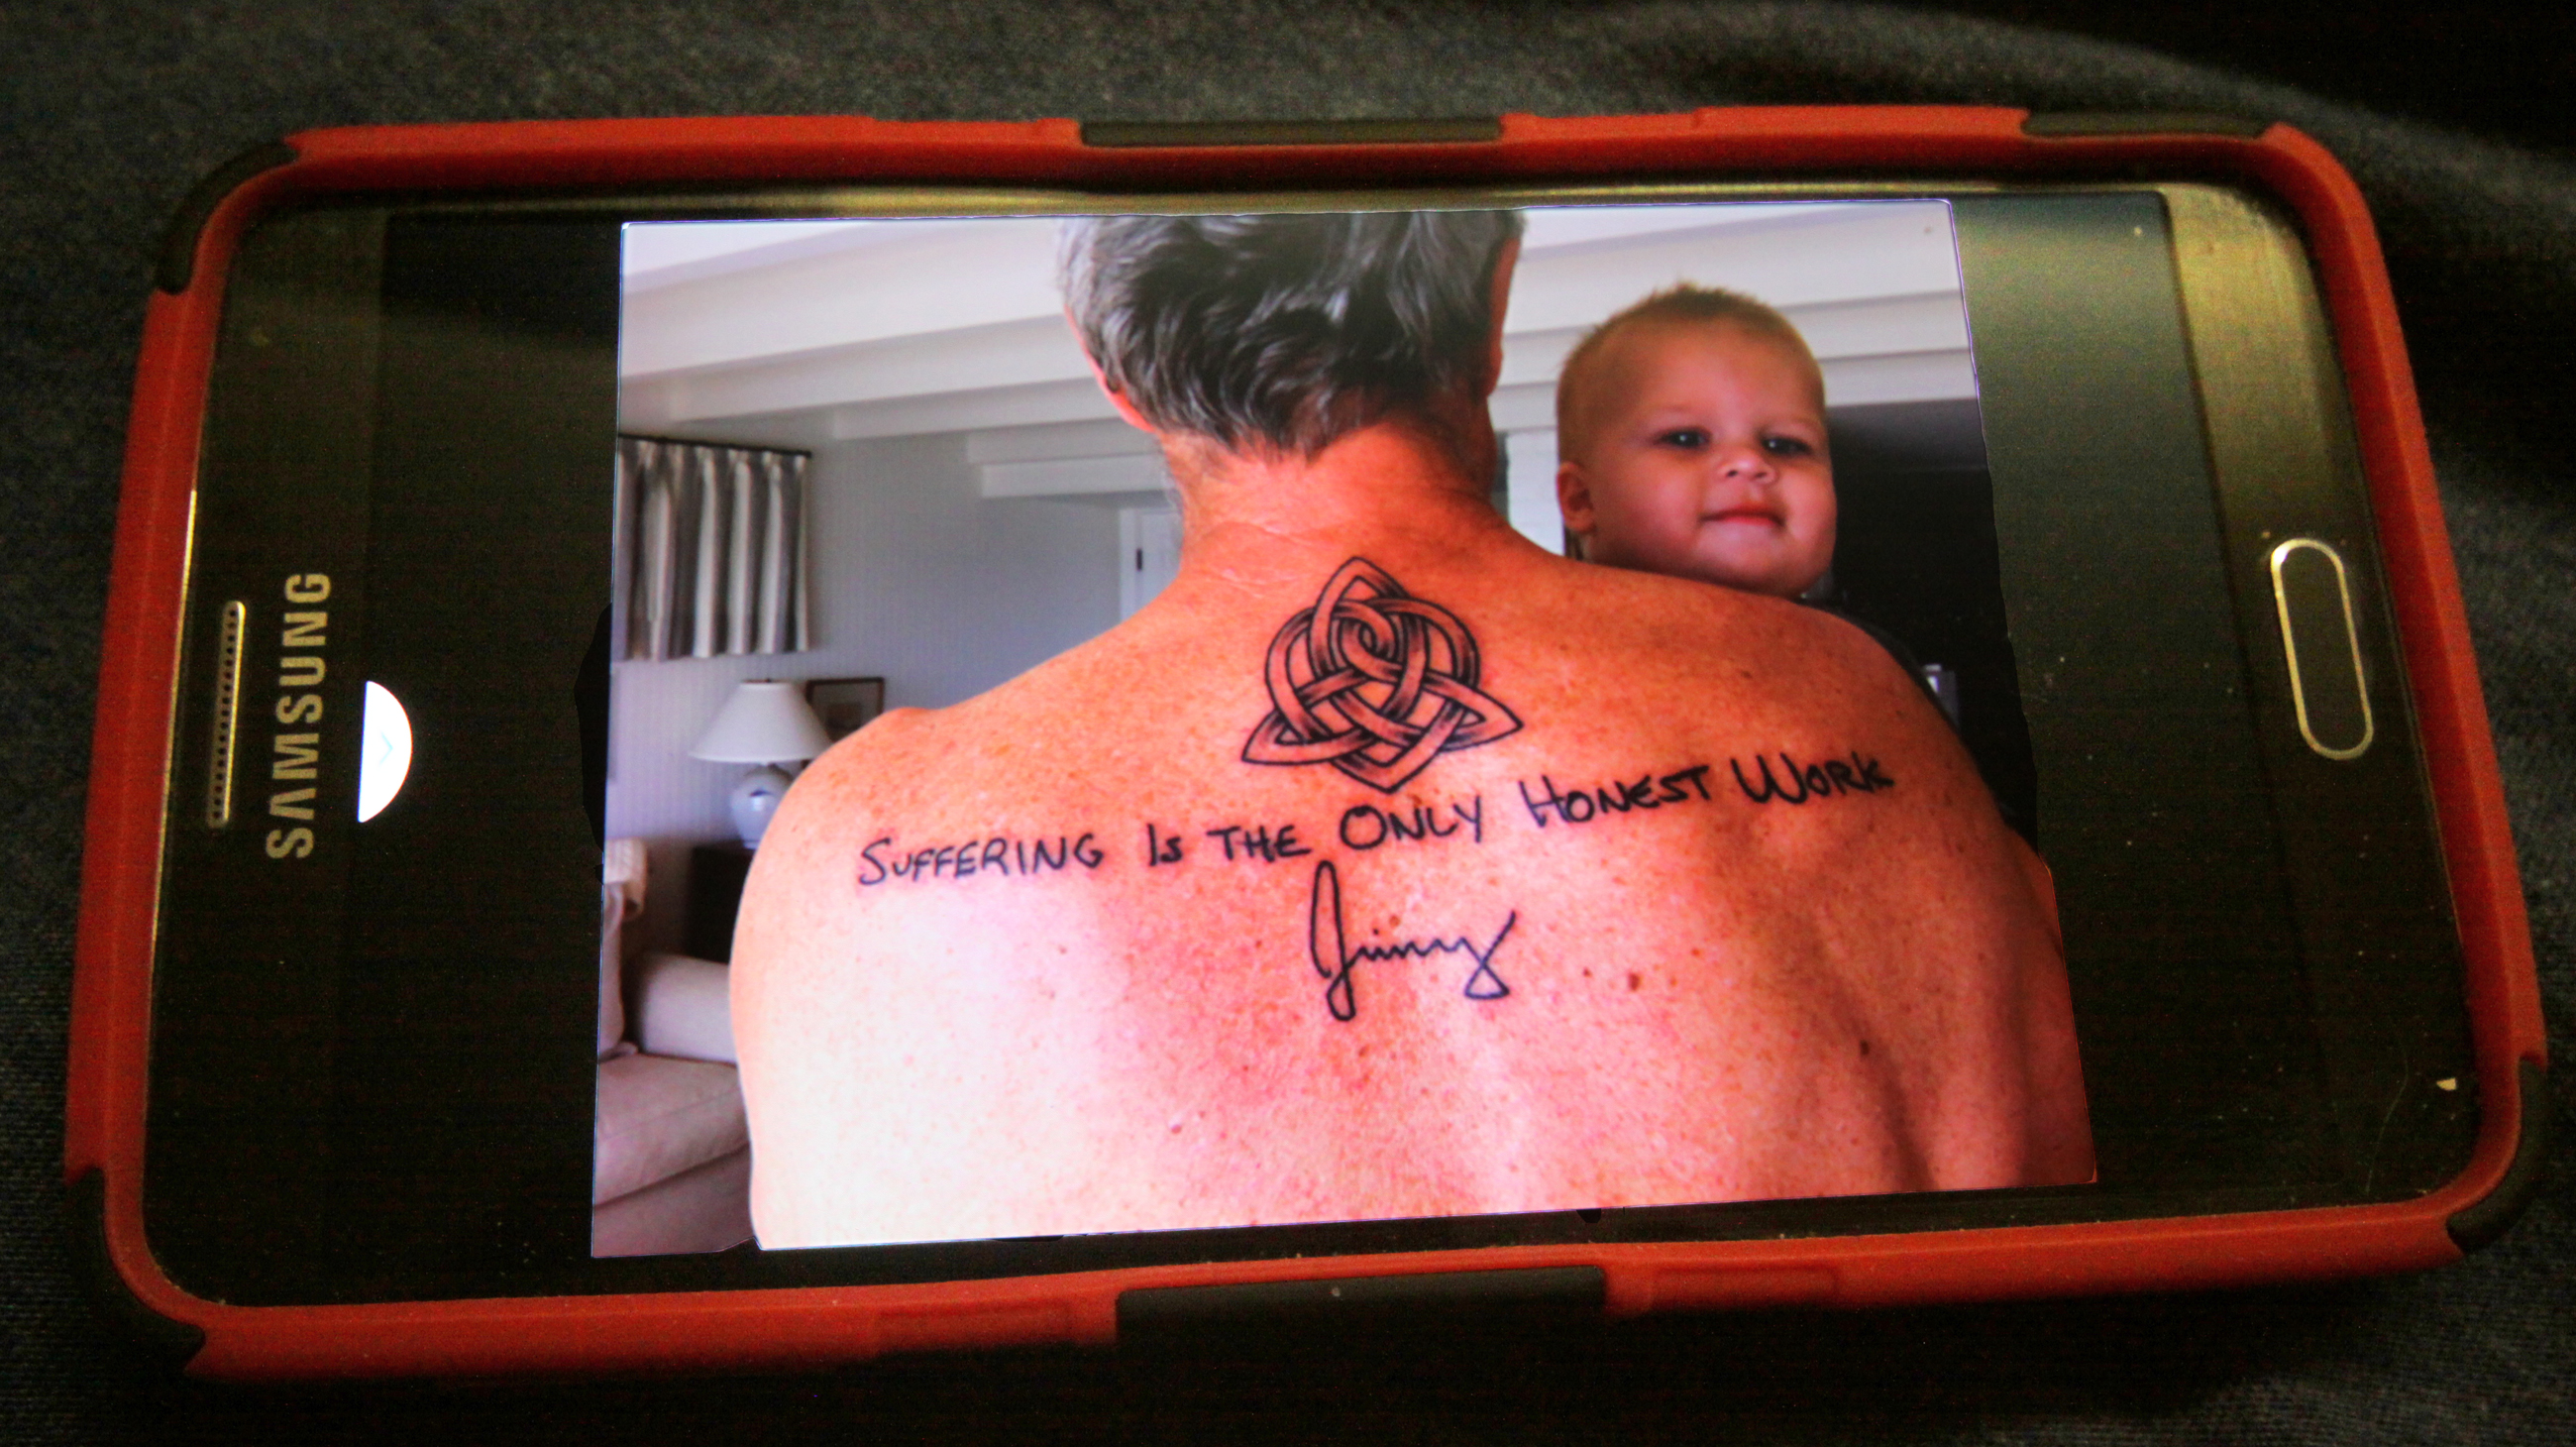 Casey tattoo on phone